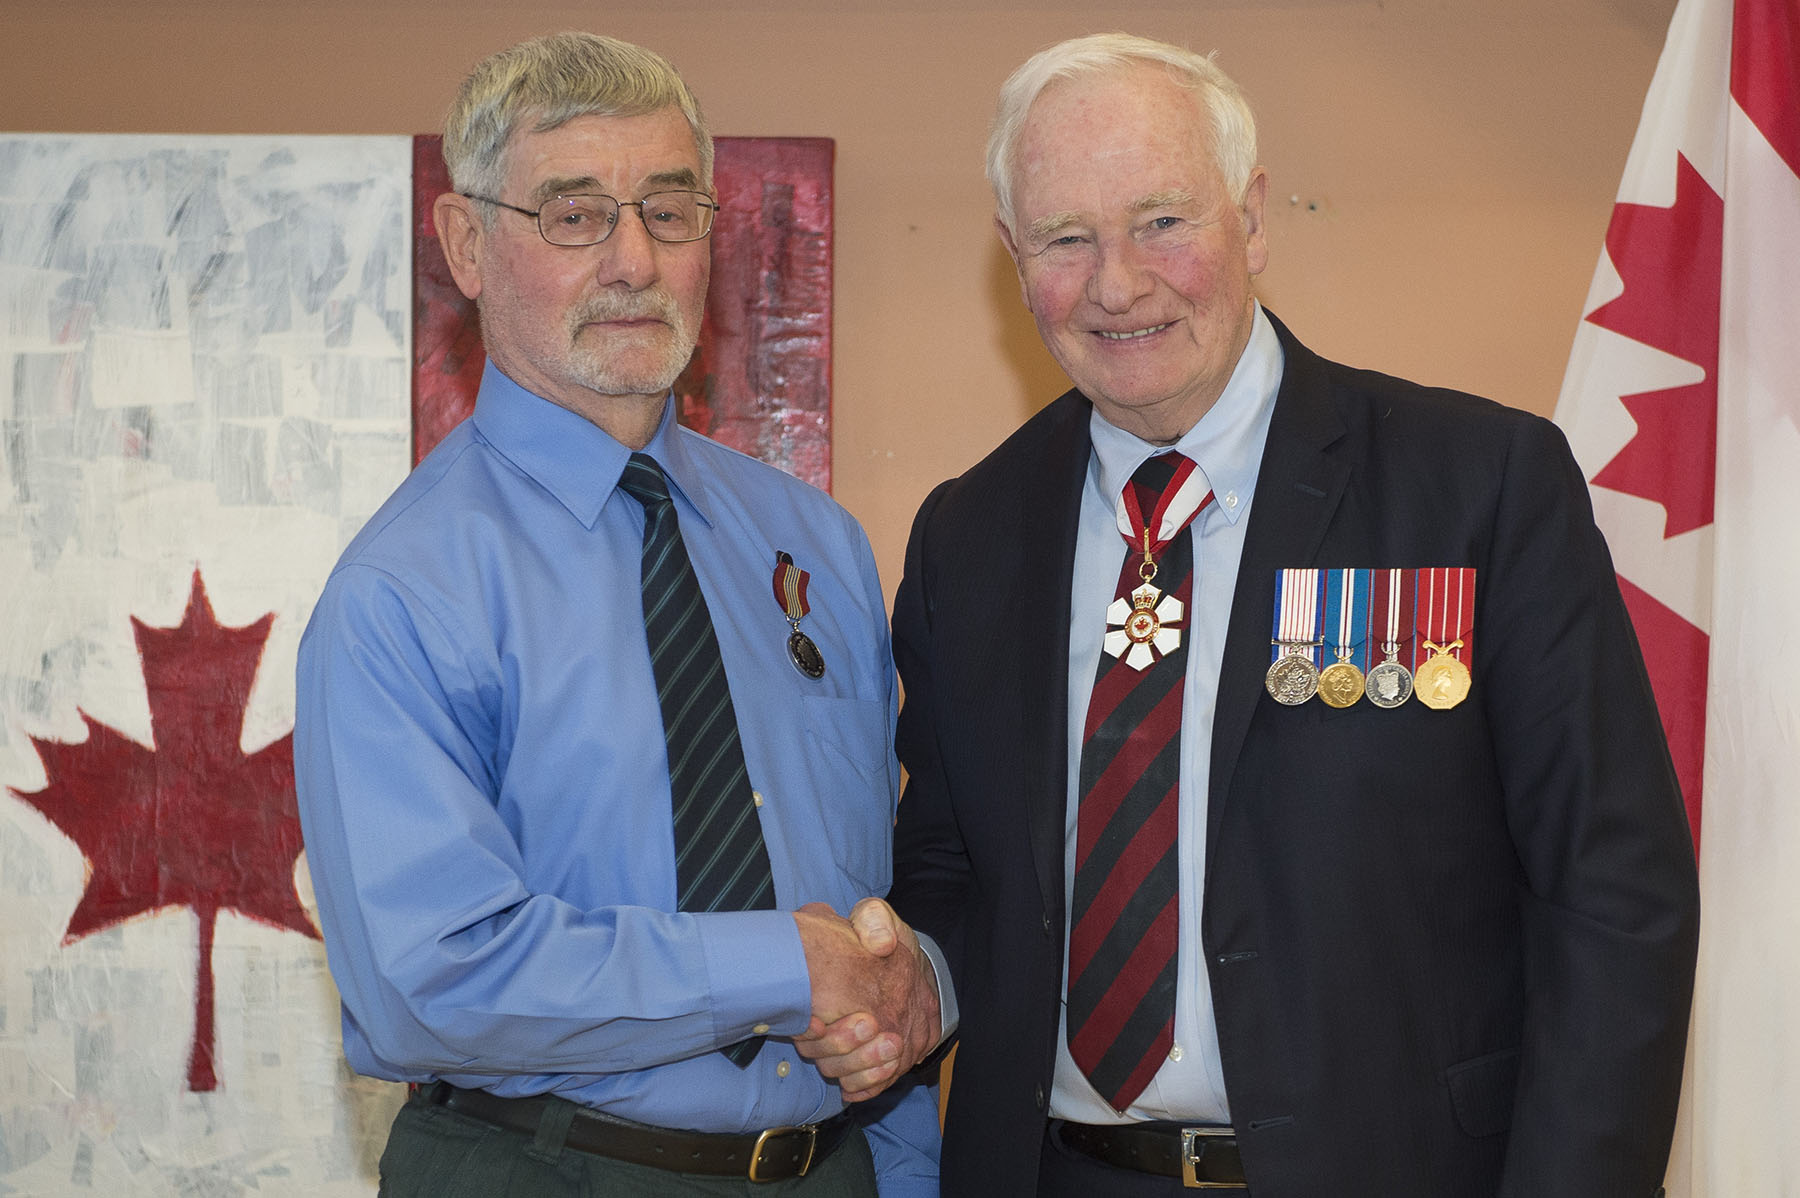 Mr. Dave Hamel was presented the Sovereign's Medal for Volunteers for his work over the past 19 years. Dave Hamel has contributed over 12 000 hours volunteering with the Perley and Rideau Veterans' Health Centre where he oversees three woodworking programs attended by hundreds of residents.